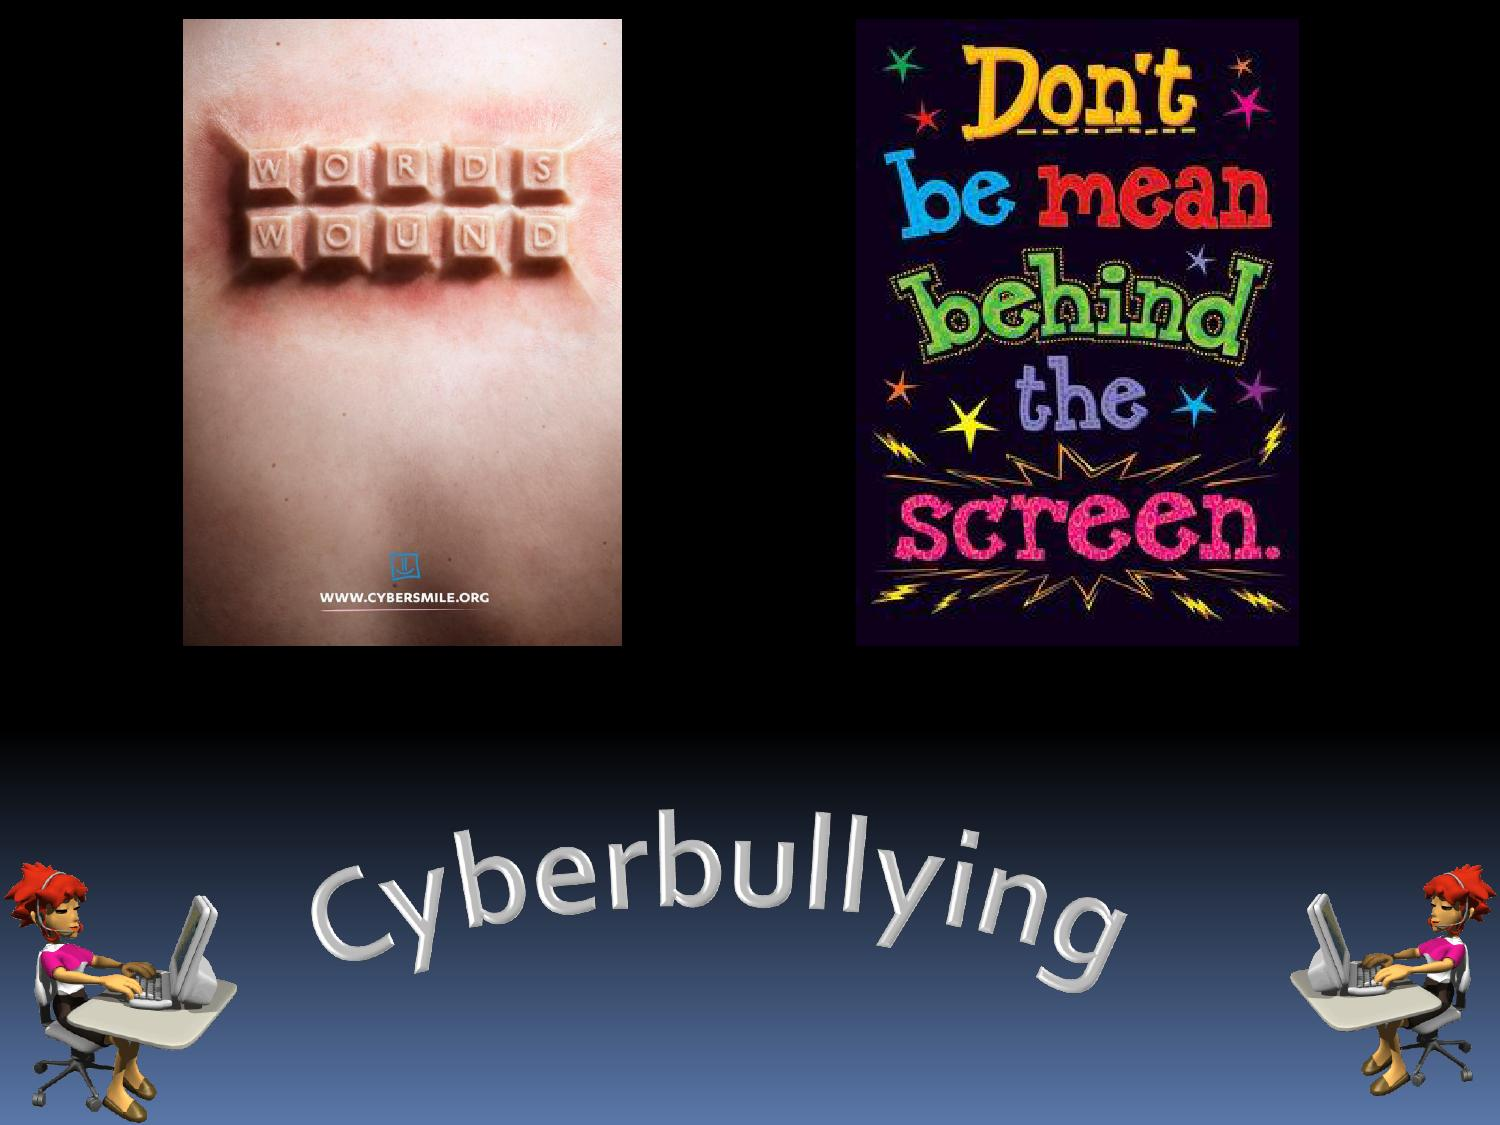 teenagers should discouraged going into internet chat room Therefore, teenagers should not be discouraged from going into these chat rooms if they know how to protect themselves furthermore, they would make more friends safely and the crime rate related to the internet would slowly decrease.